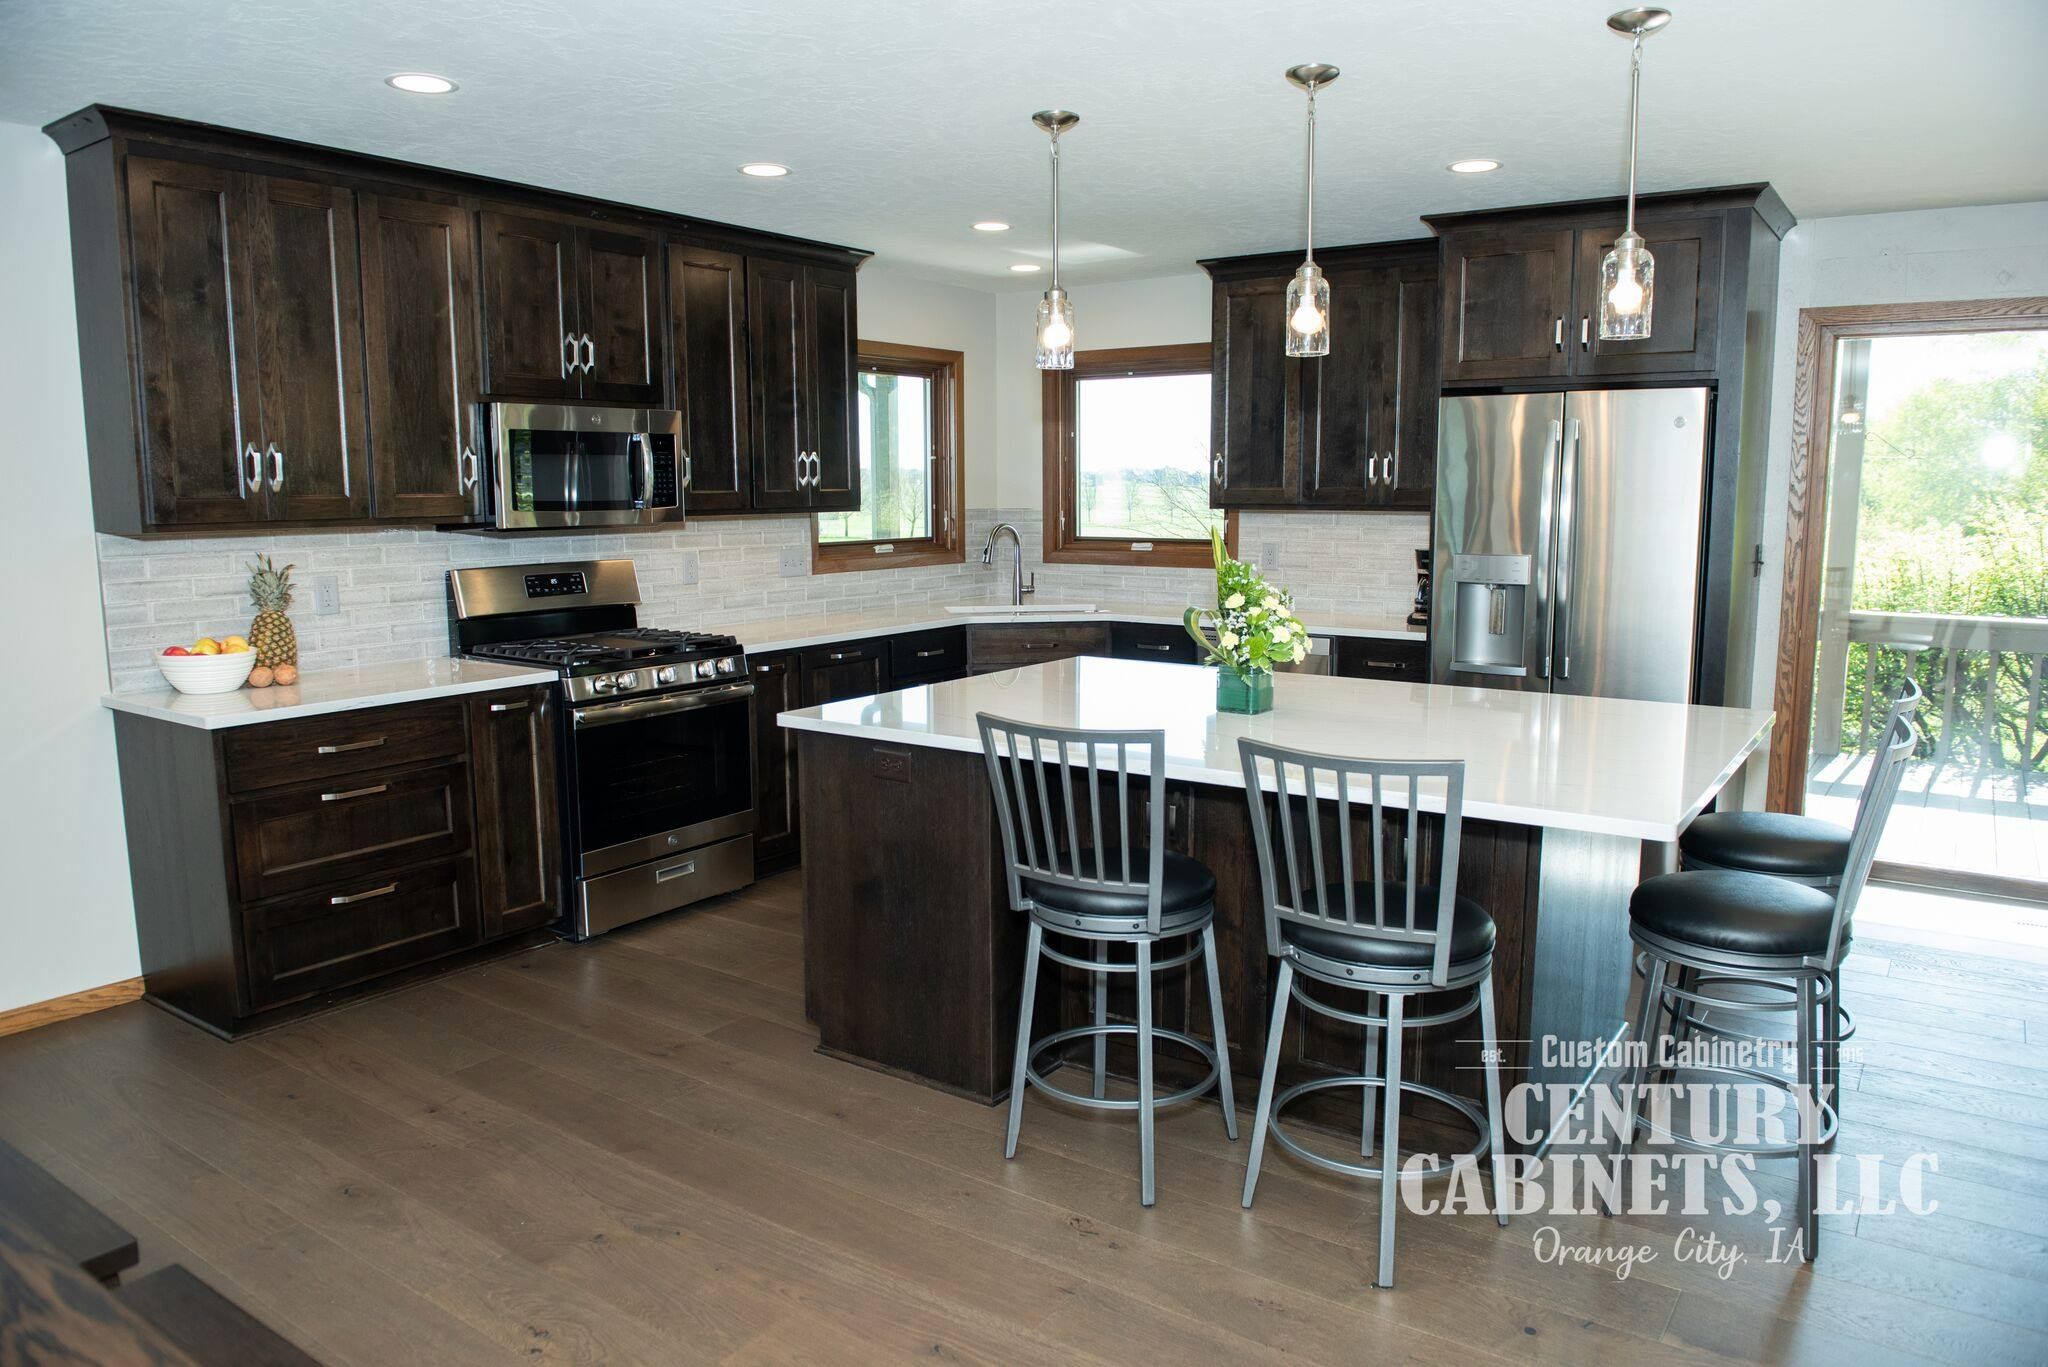 Rich Rustic Hickory | Custom Cabinetry Century Cabinets, LLC